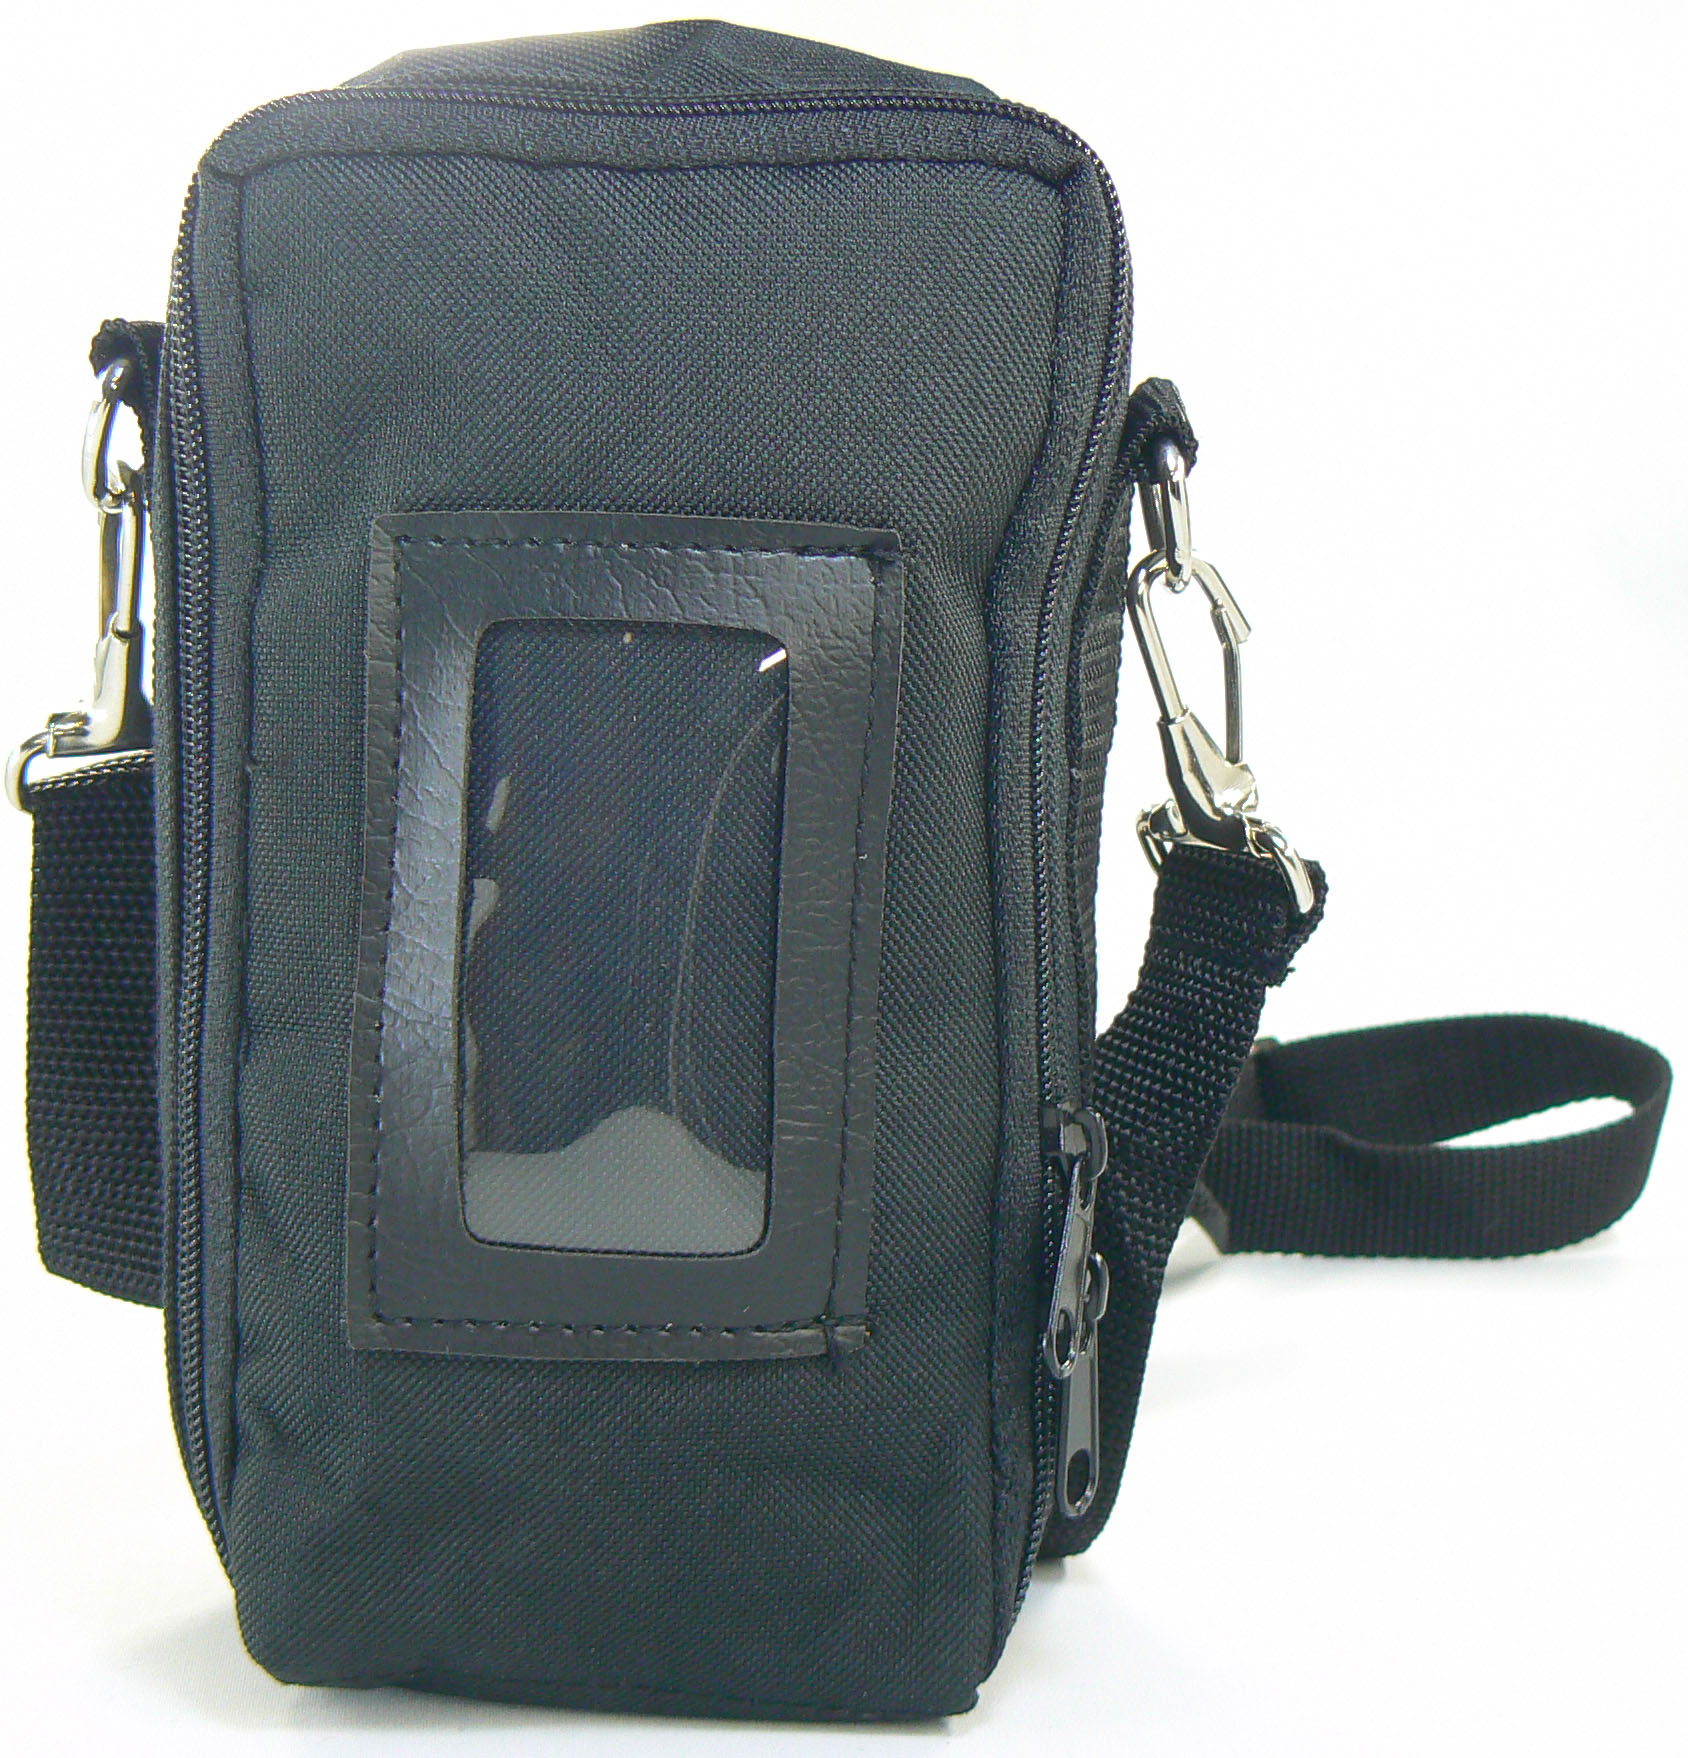 PIE 020-0204 large carrying case for PIE 541, 532 & 535